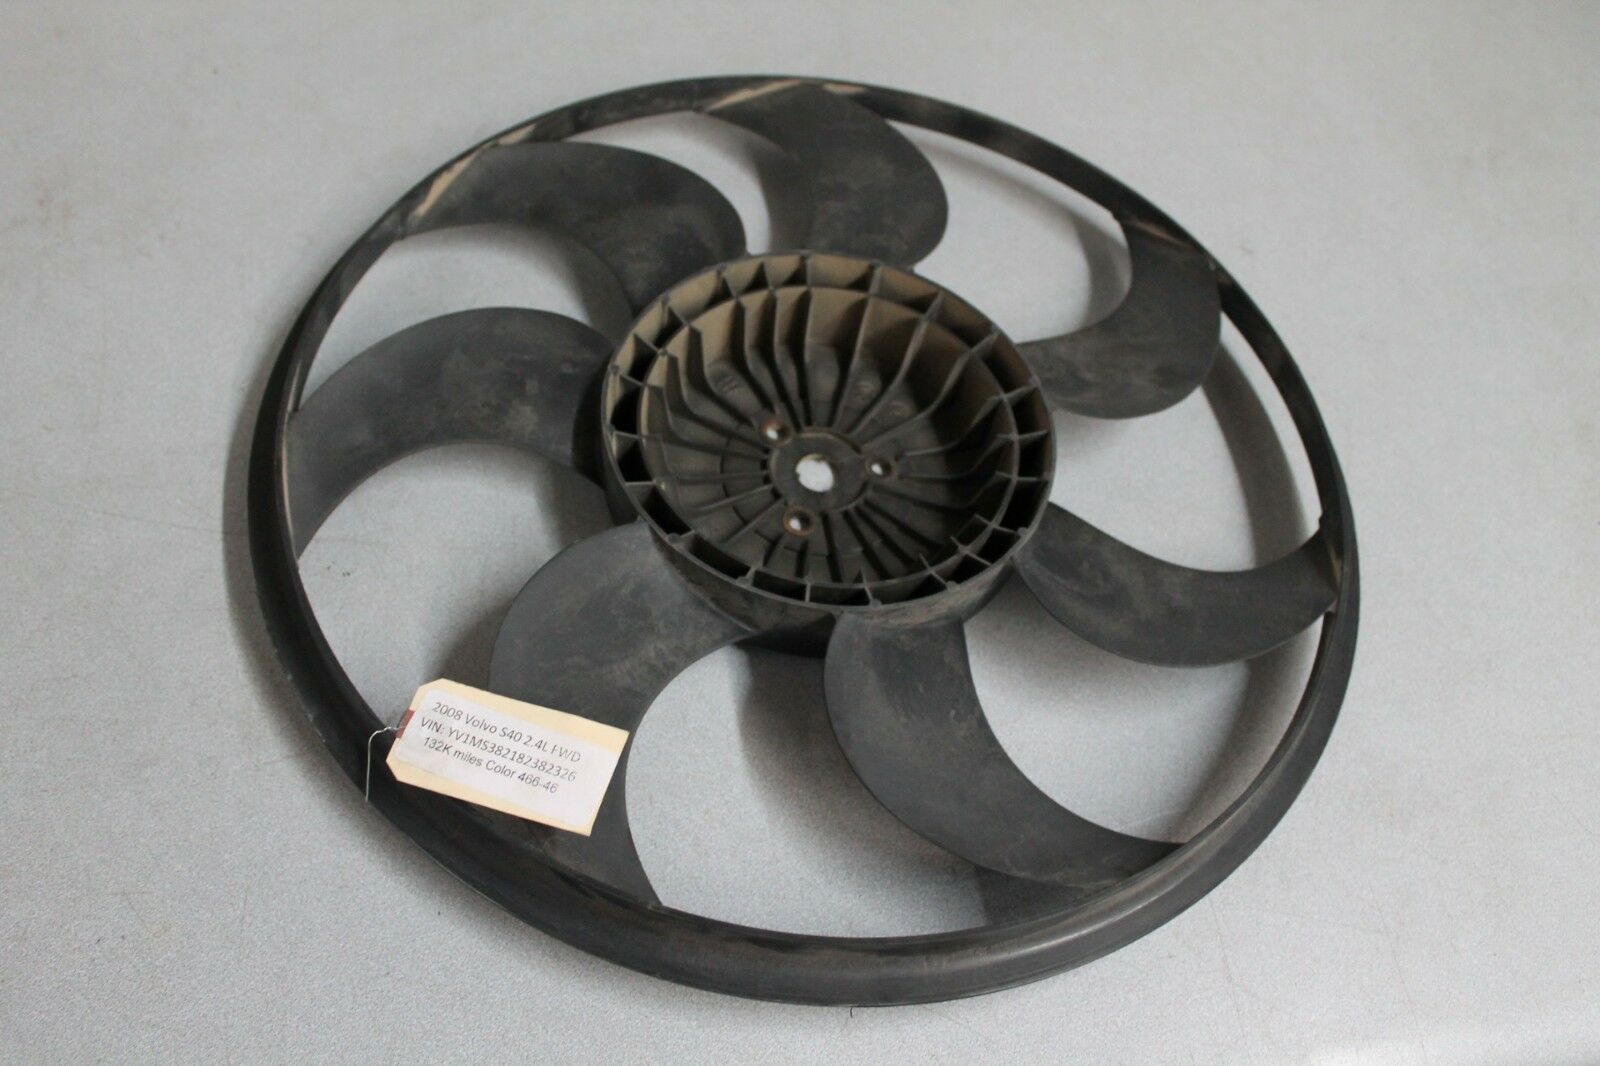 Volvo S40 Radiator Cooling Fan Blade 7 Spoke Part 3136613303 Ebay Flexalite Electric Black Magic Series Coximportcom A Norton Secured Powered By Verisign